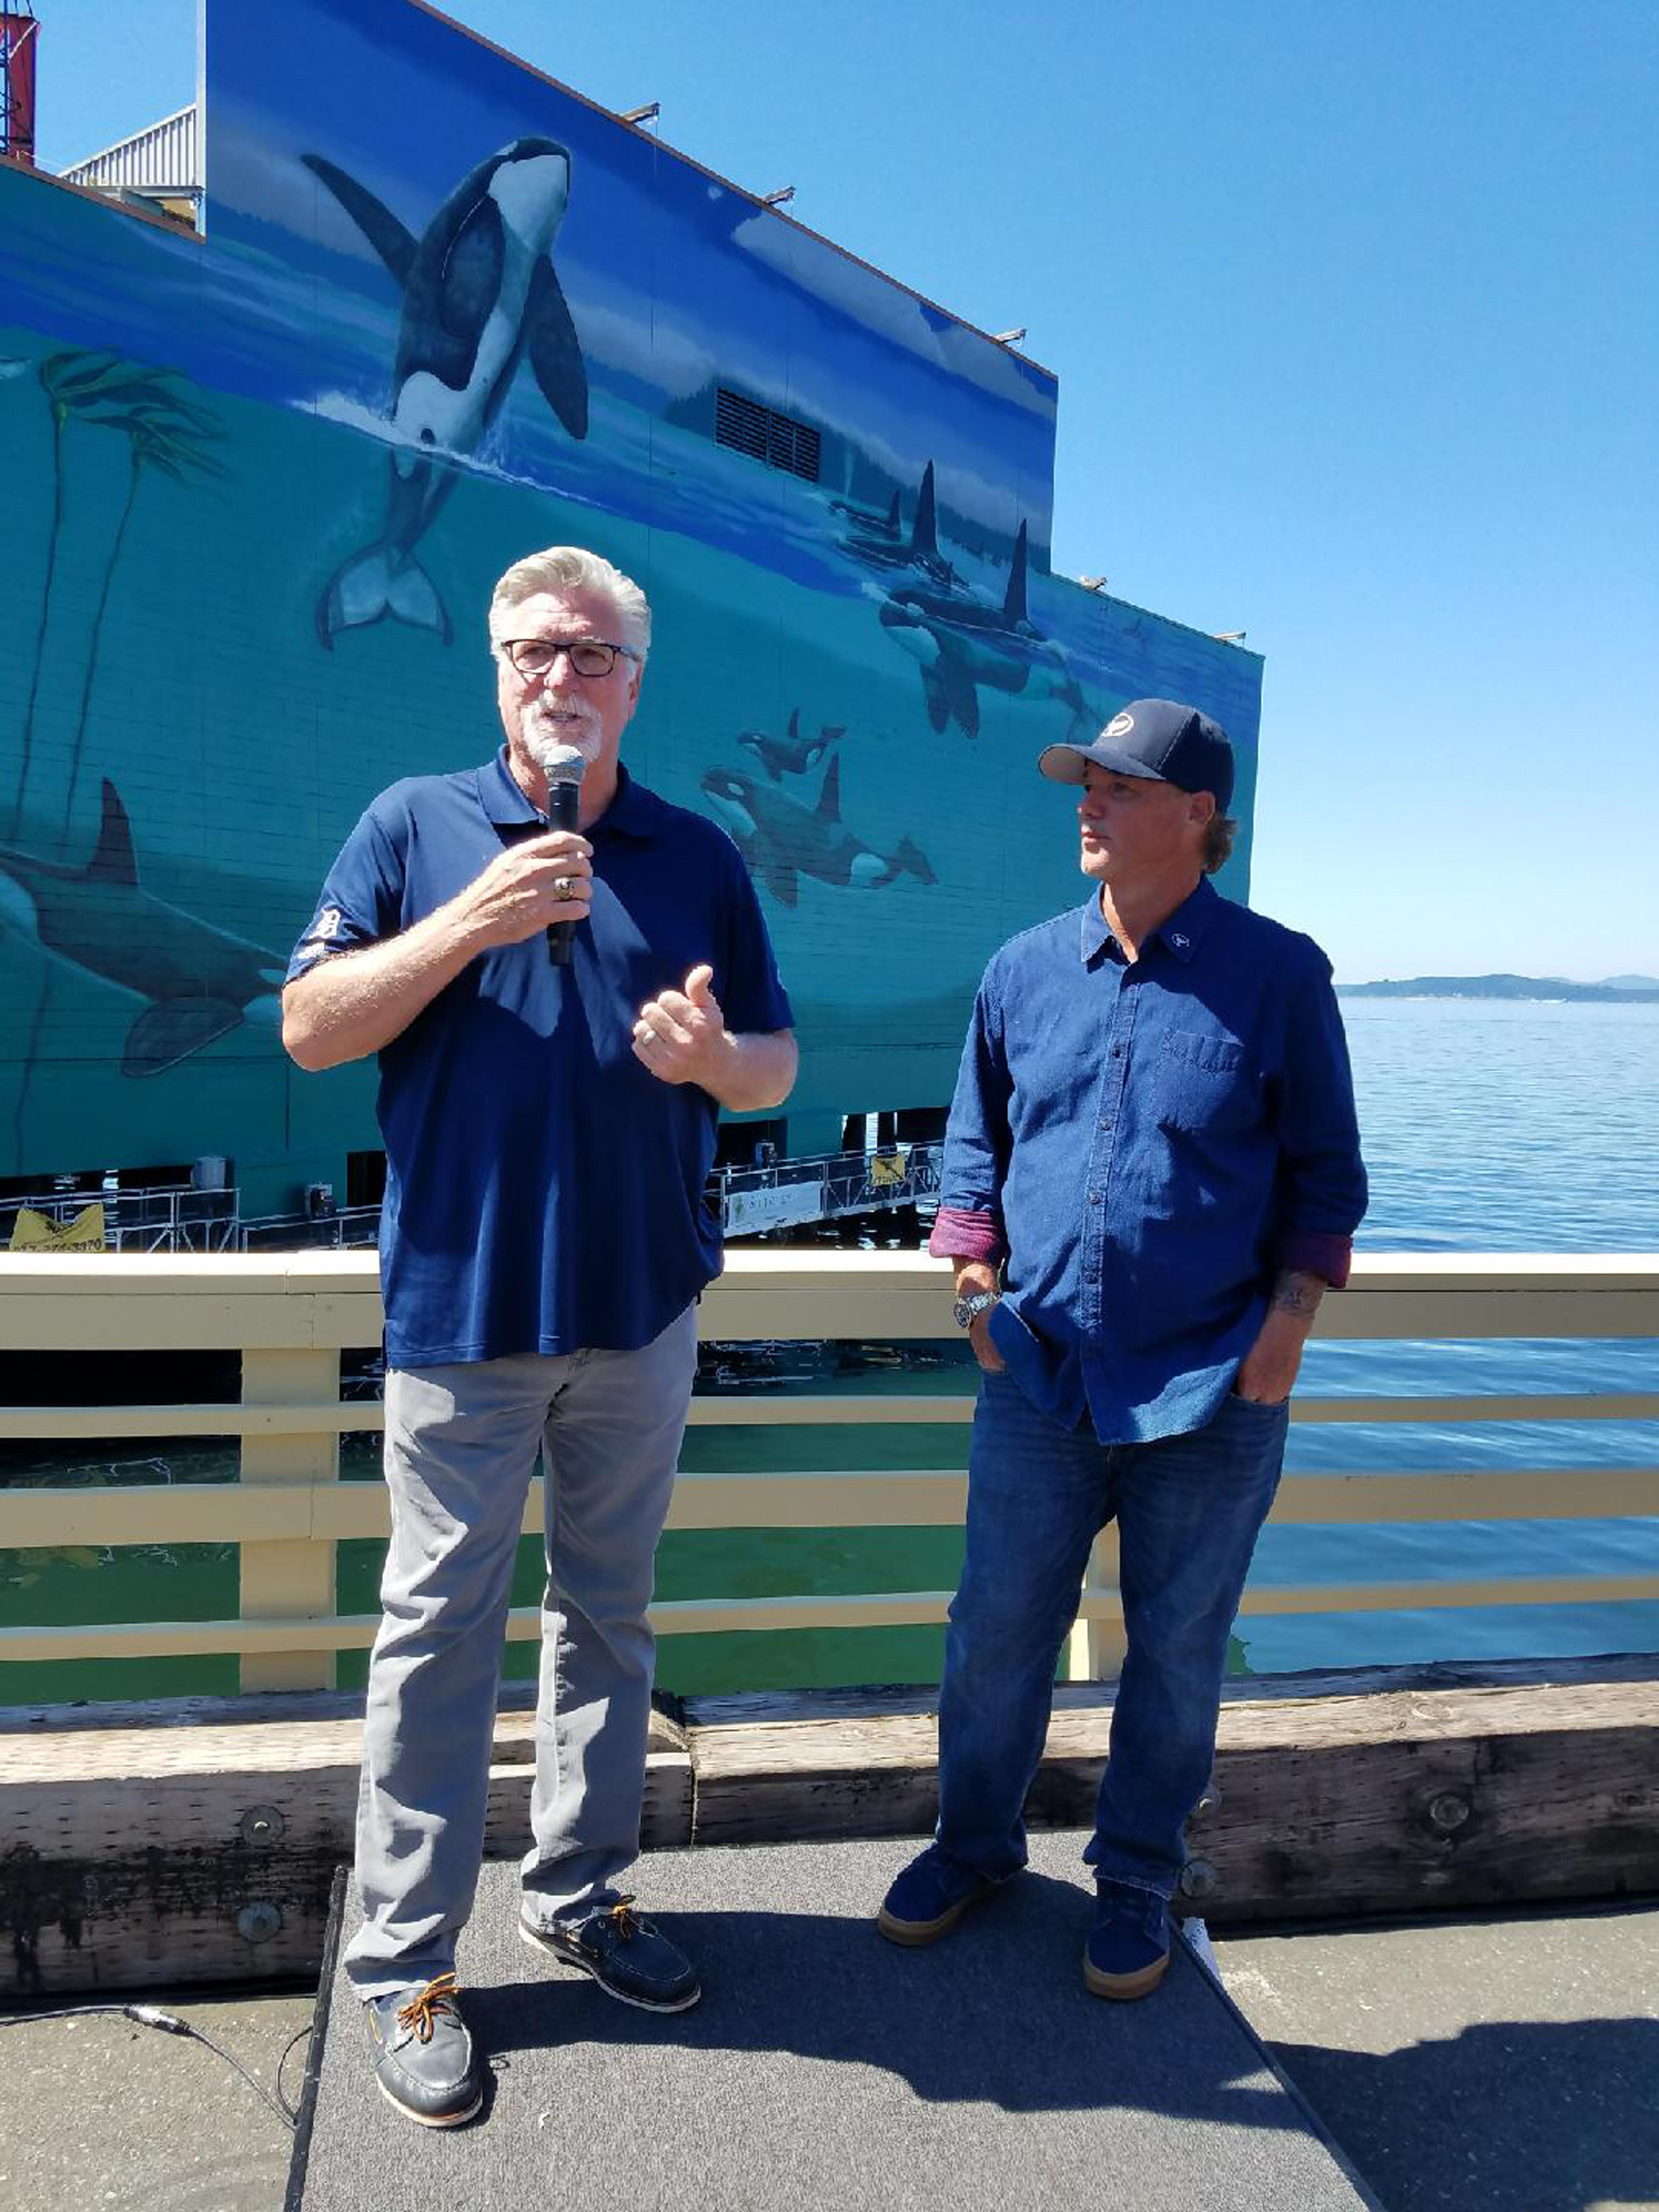 "The Edgewater Hotel{ }partnered with acclaimed artist and conservationist,{ }Wyland, to ""recreate his special landmark in the Emerald City."" His special land mark is his famous ""Whaling Wall"" murals, with over 100 life-size whale murals that have popped up around the world over a 27-year period. Wyland paints these murals to bring awareness to the state of our oceans and to celebrate his global efforts for clean water and healthy oceans for all species. He had been working on this mural from July 23-27, 2019. Be sure to head down to the Edgewater to get a sneak peek of this amazing mural! (Image courtesy of Gary Firstenberg)."